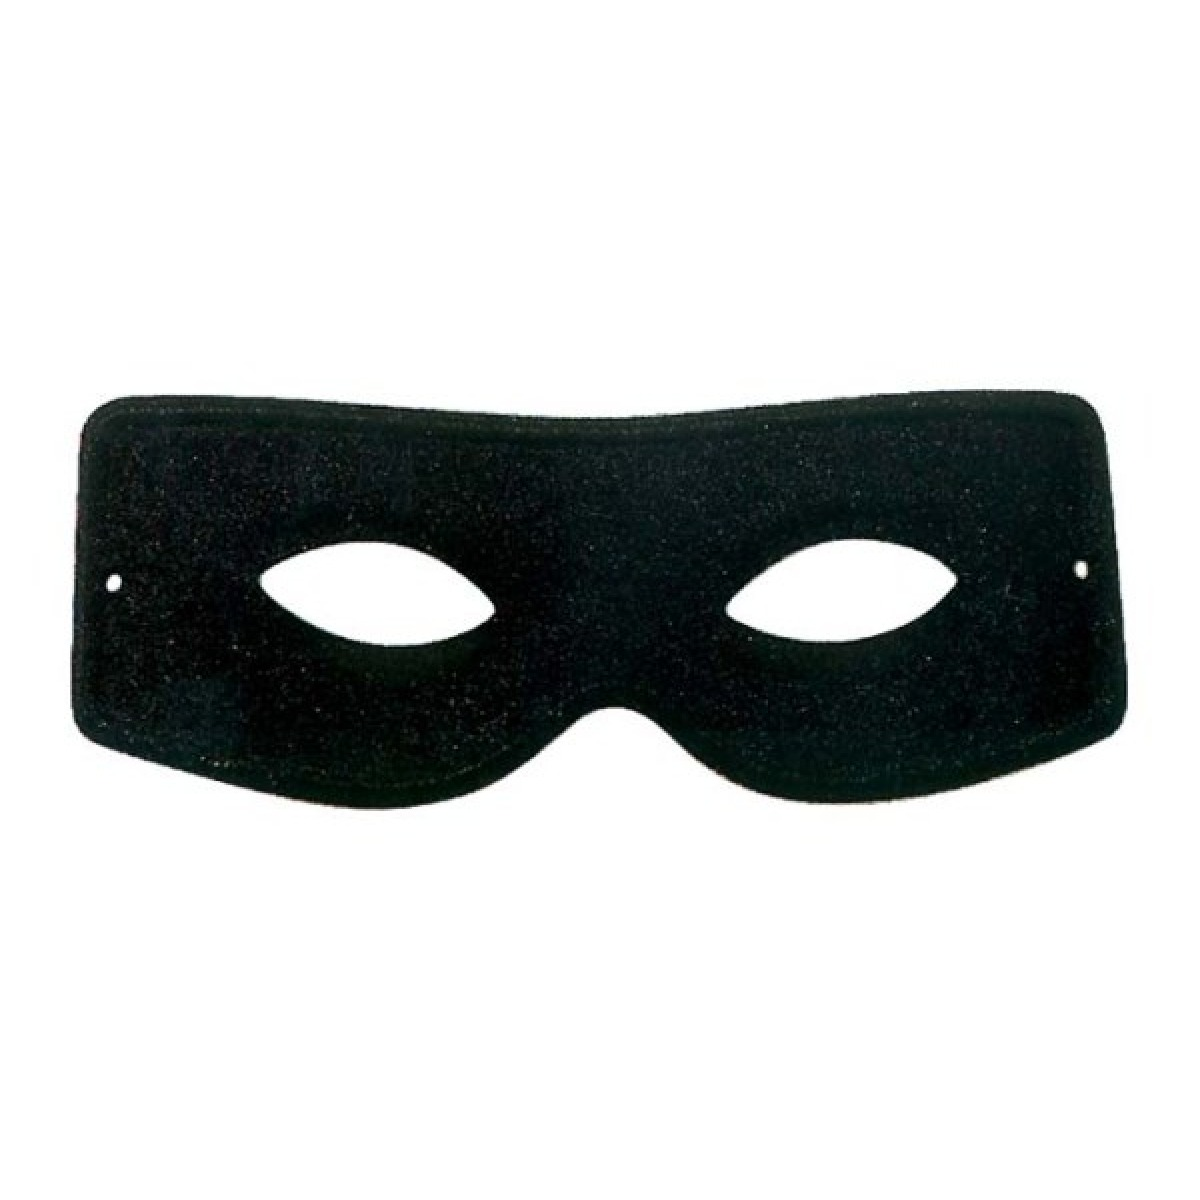 1200x1200 29 Images Of Black Eye Mask Template